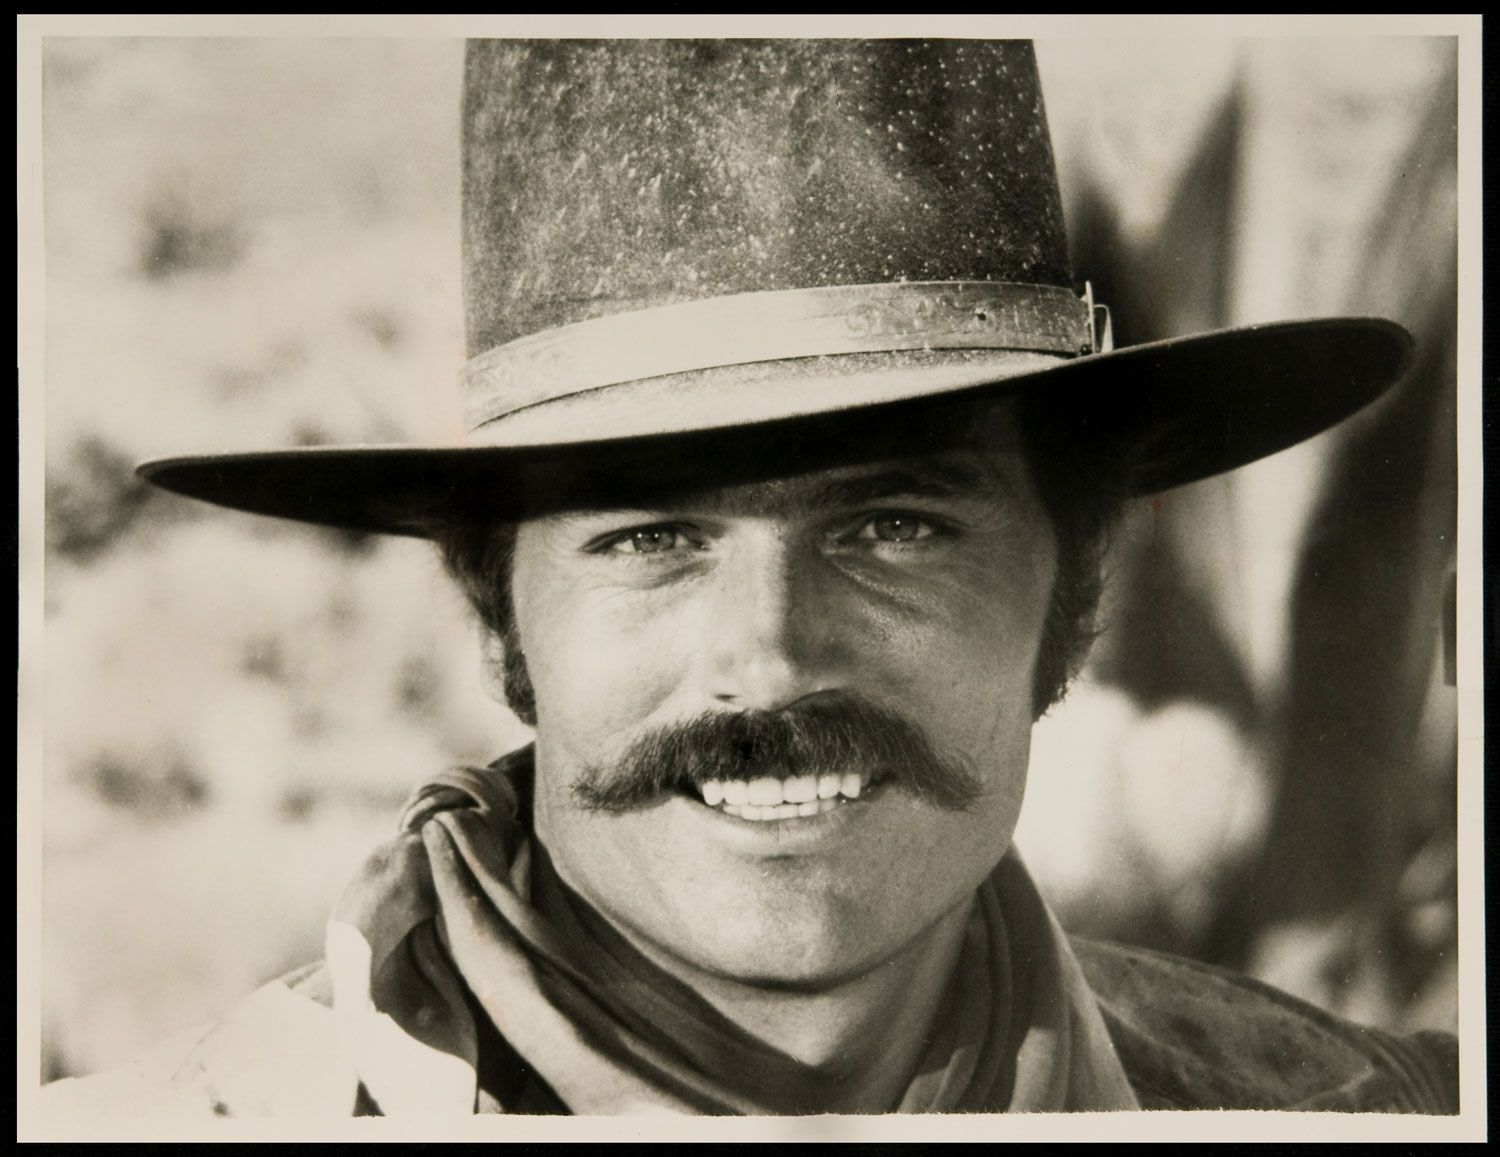 fc25fccedf6 This is Patrick Wayne from Big Jake. His father